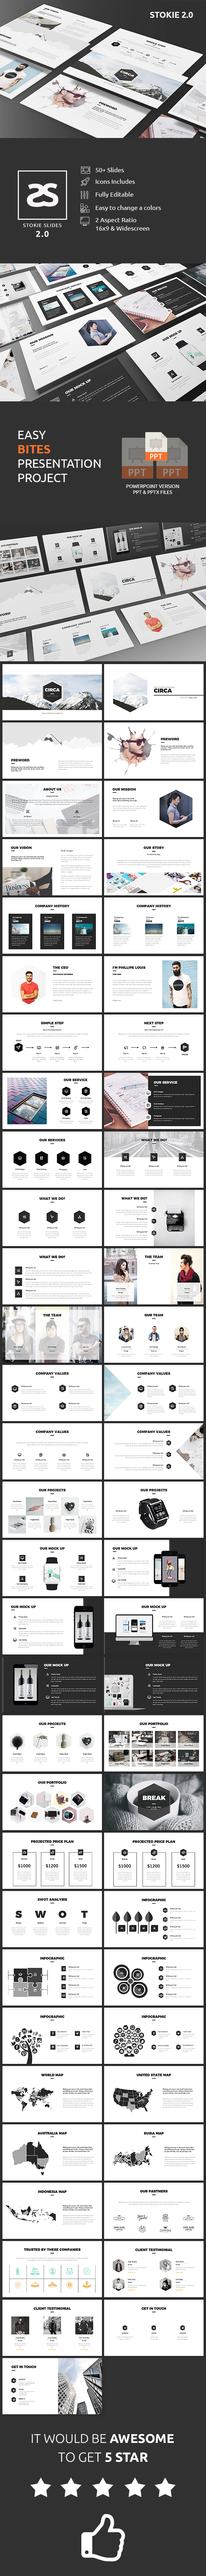 GraphicRiver Creative Powerpoint Template 2.0 20782852